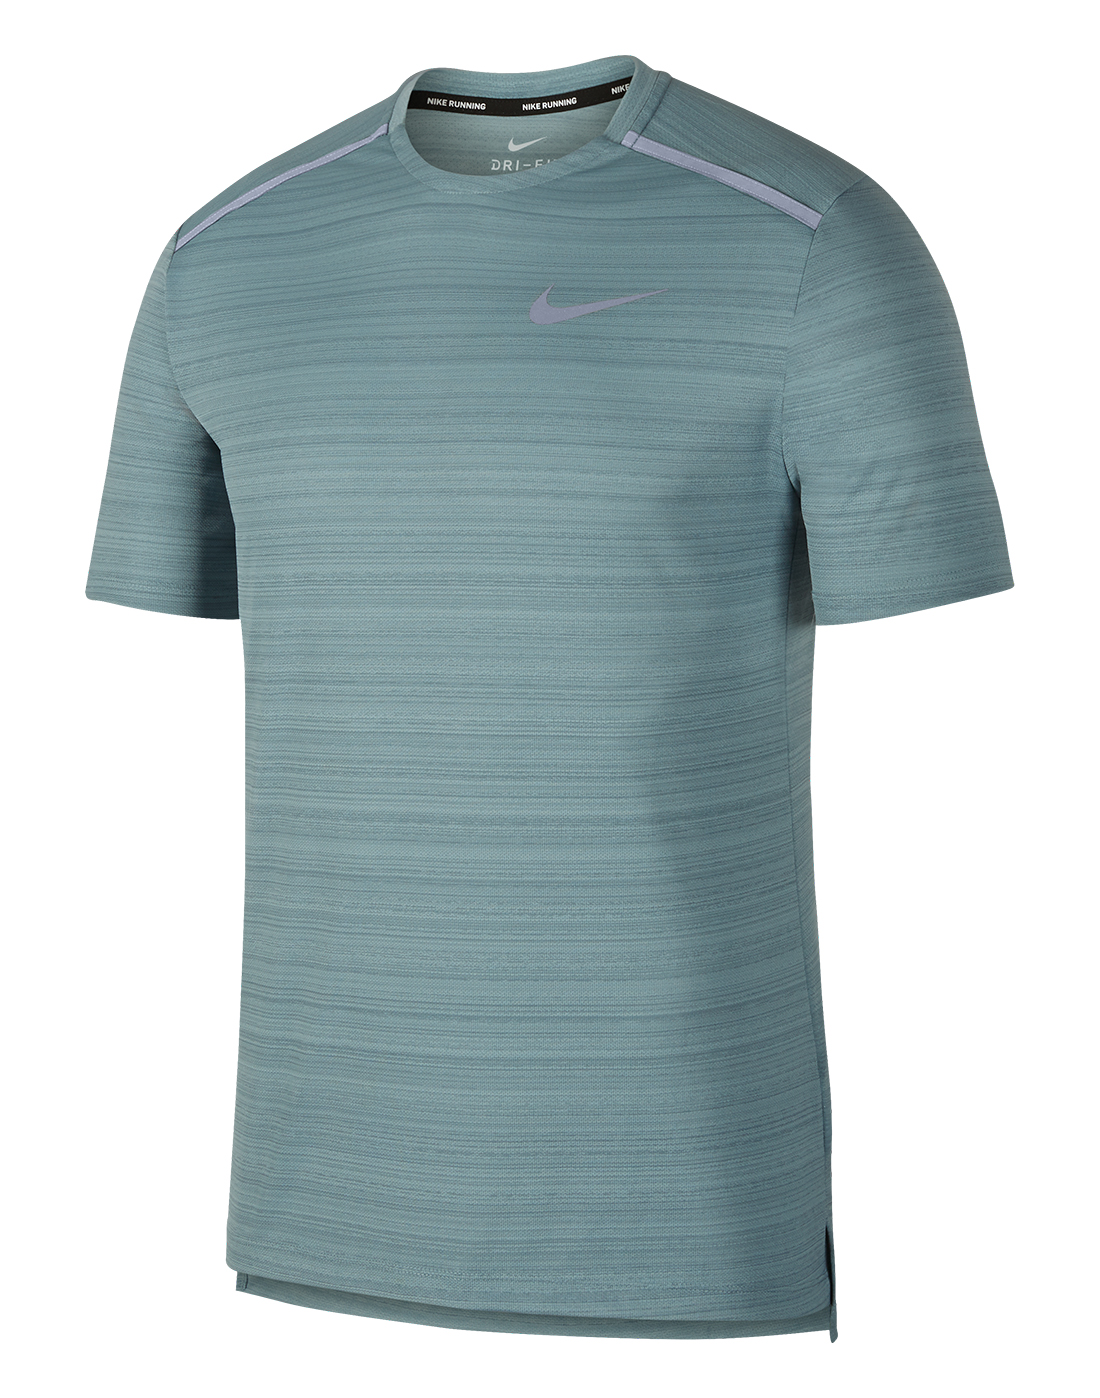 455e9aad Men's Teal Blue Nike Dry Running T-Shirt | Life Style Sports